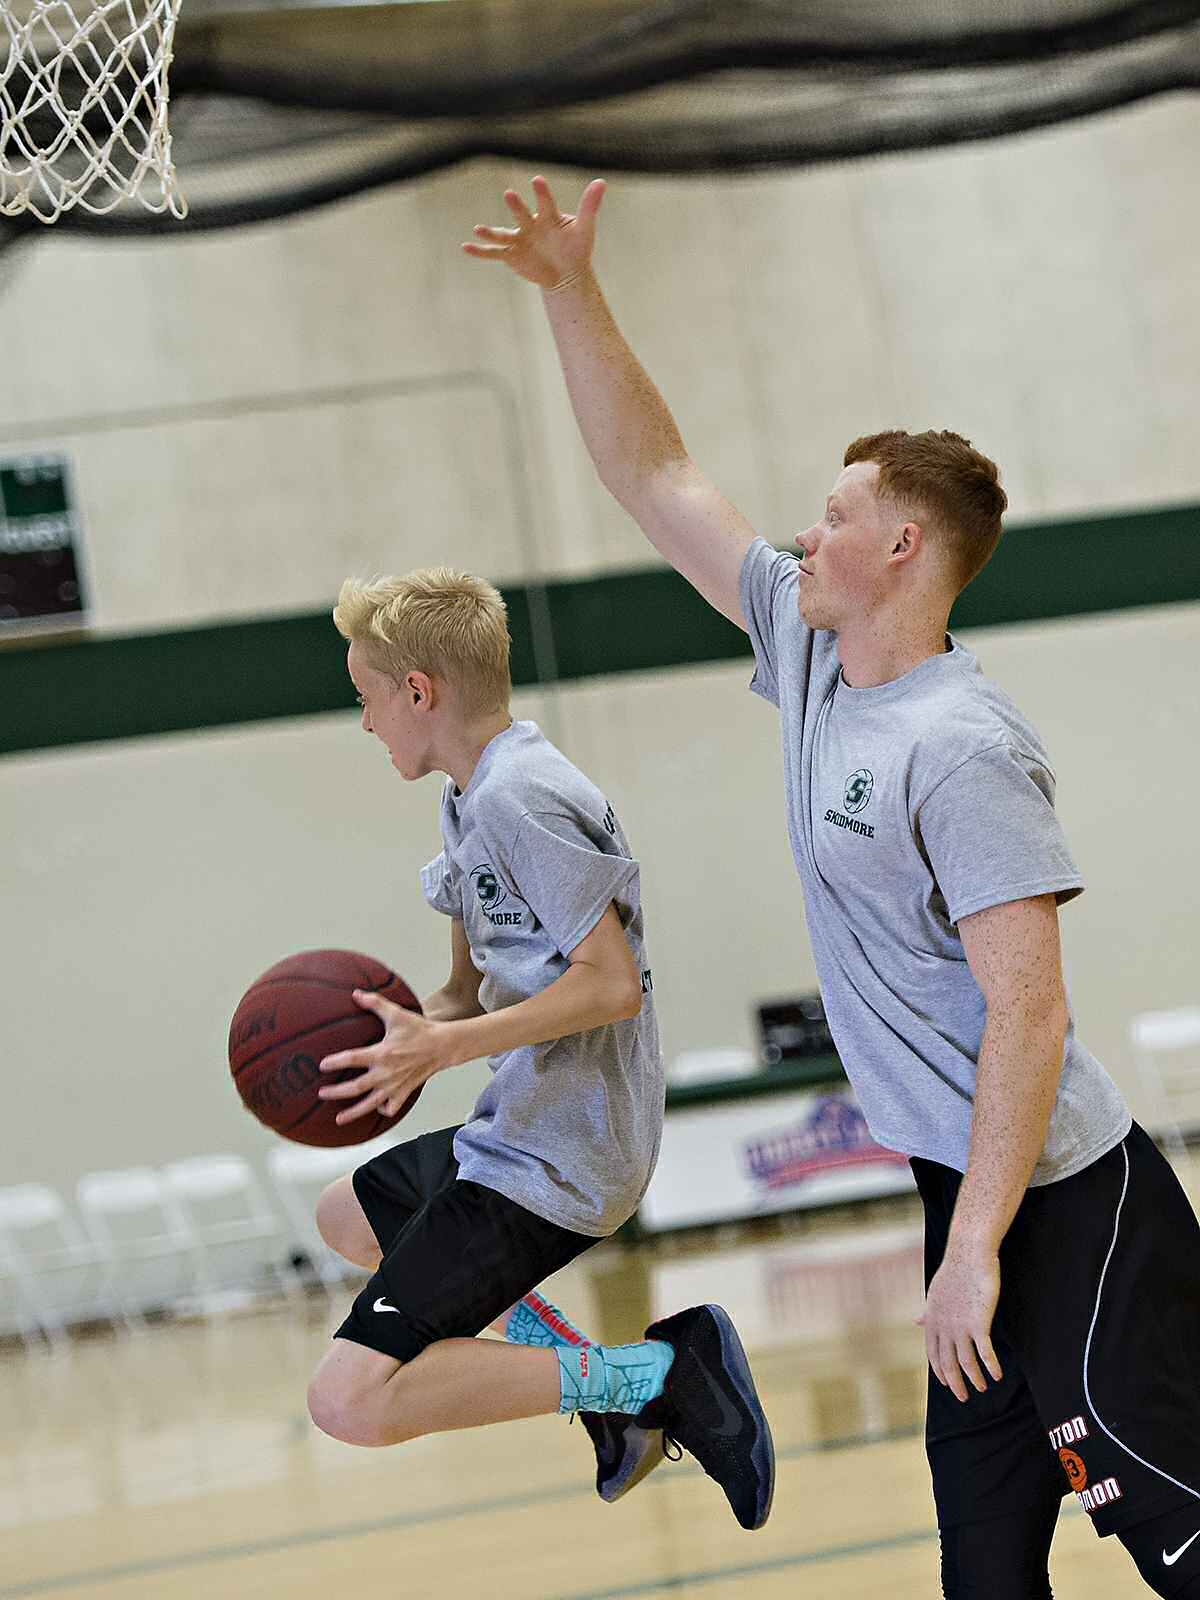 A high-flying camper takes on 6-foot 4-inch Pat Gallagher '20.